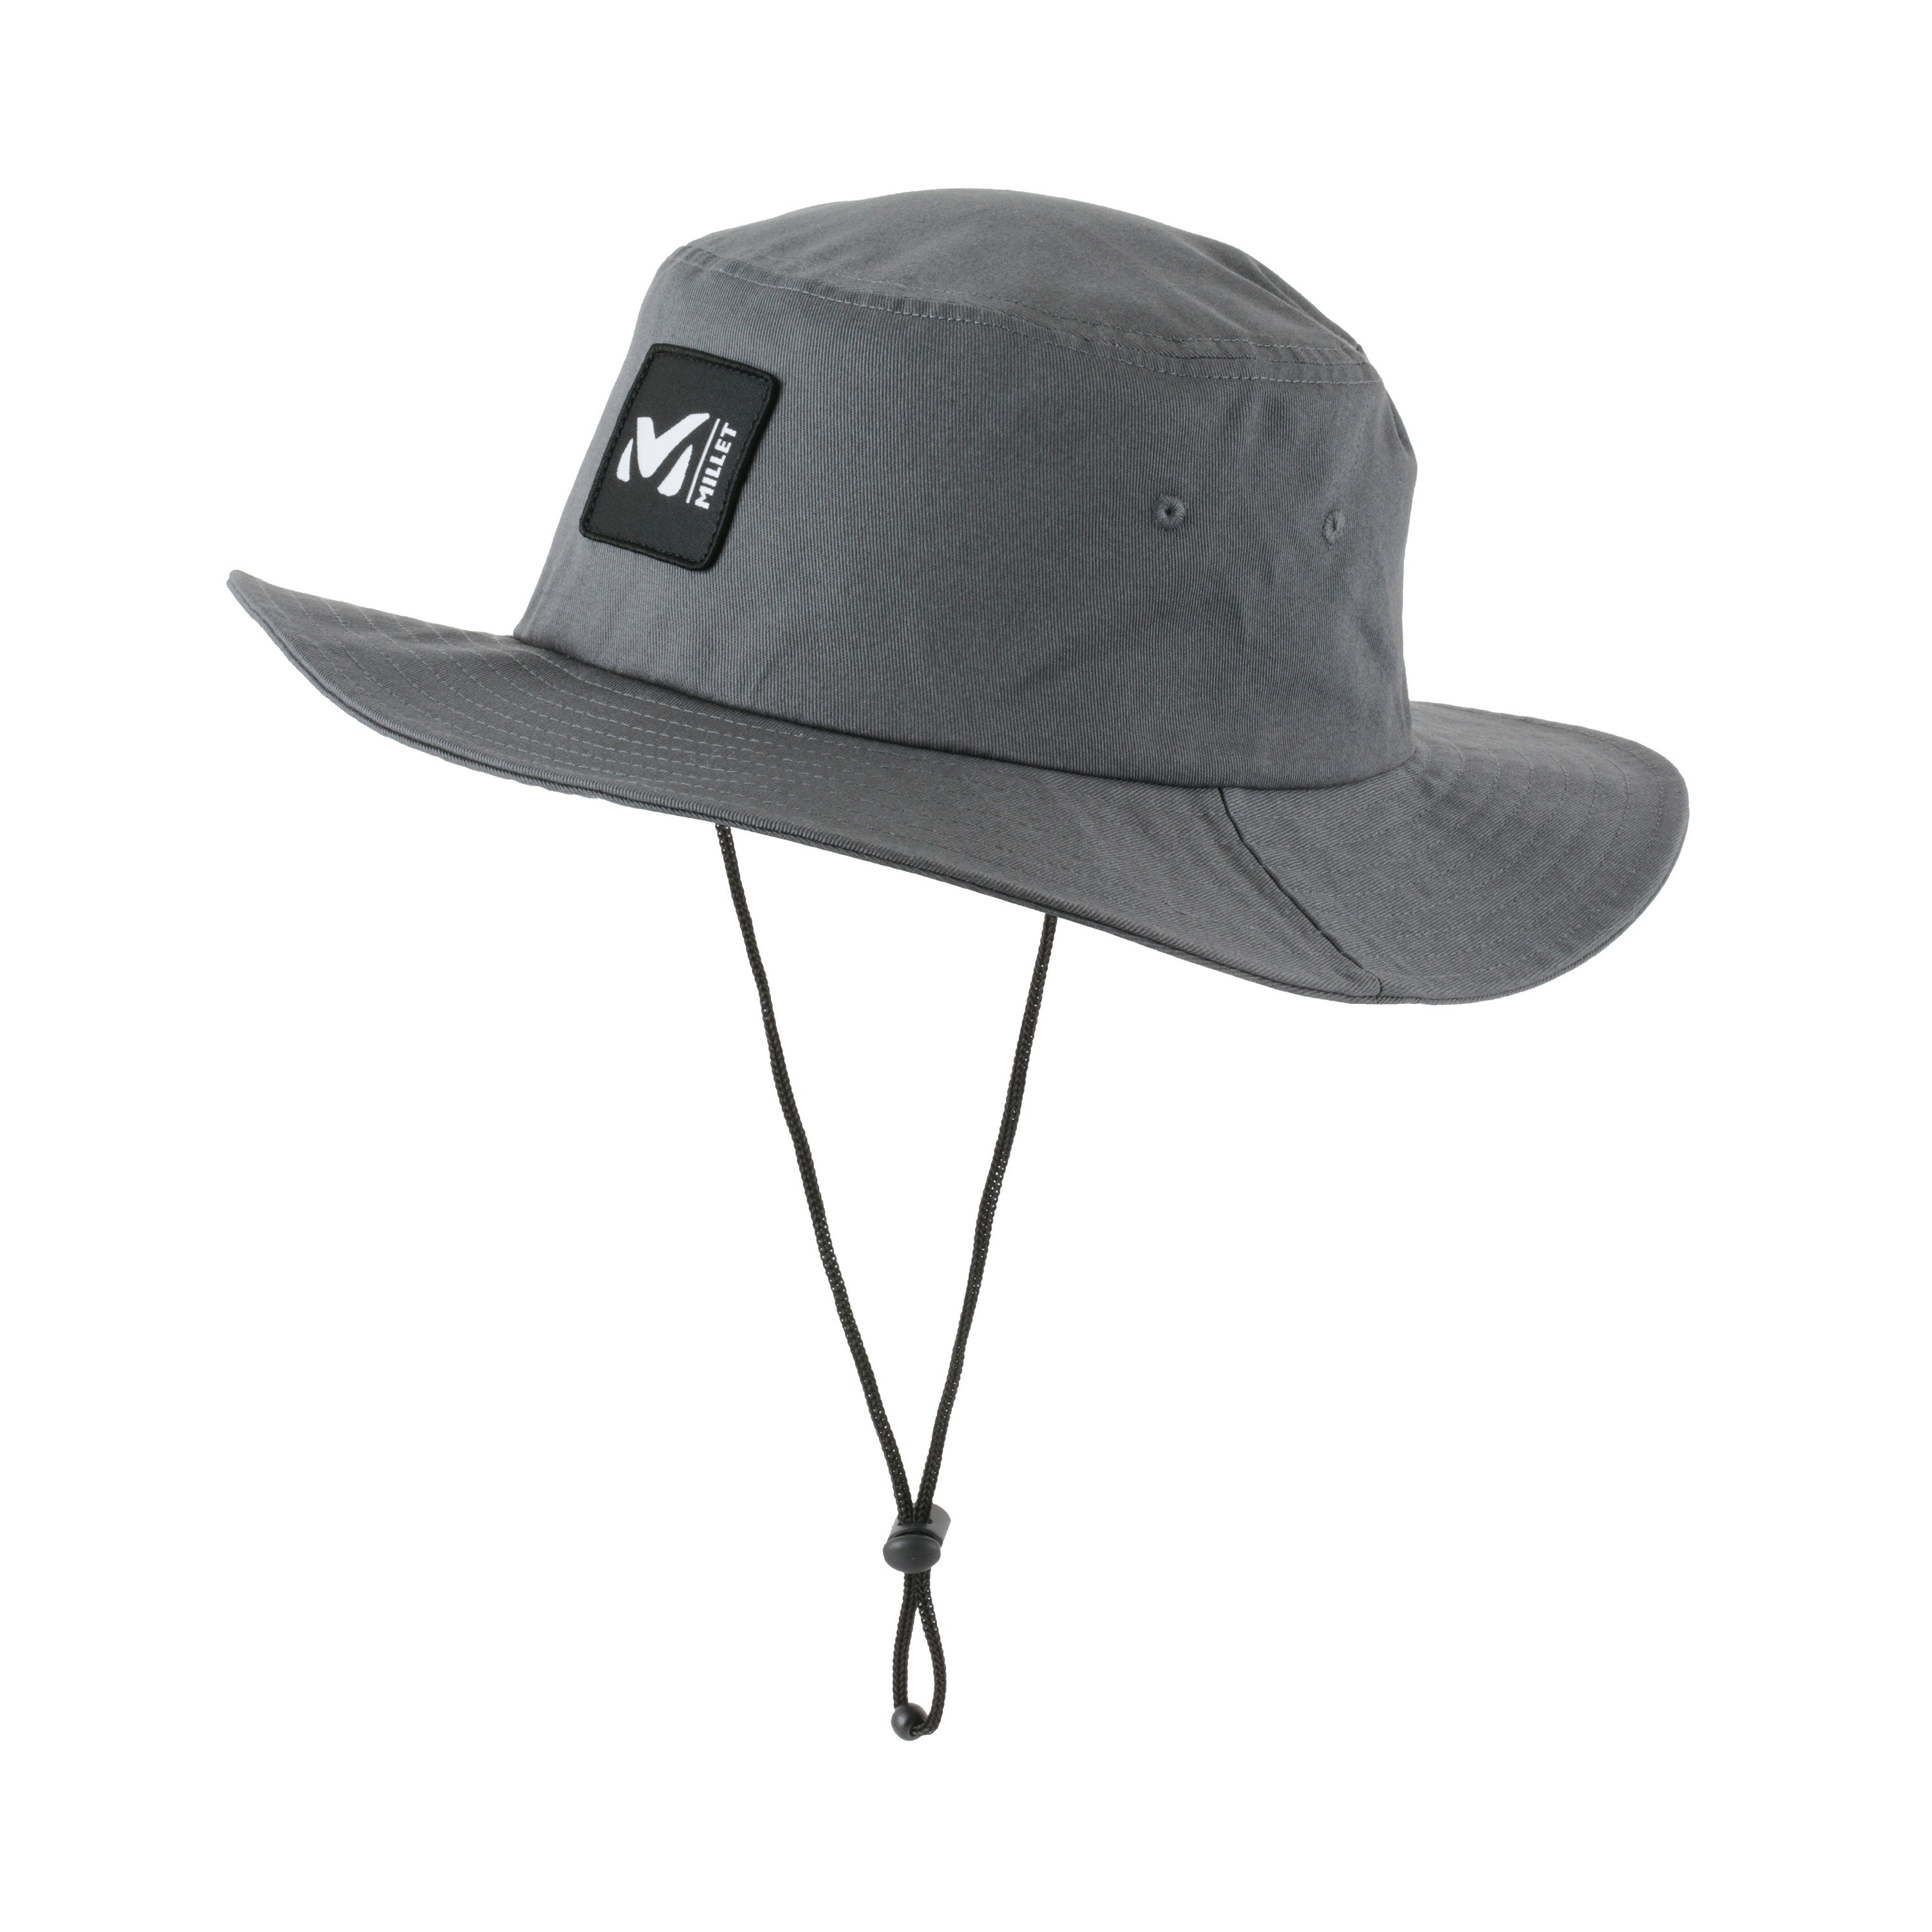 TRAVELLER FLEX II HAT M